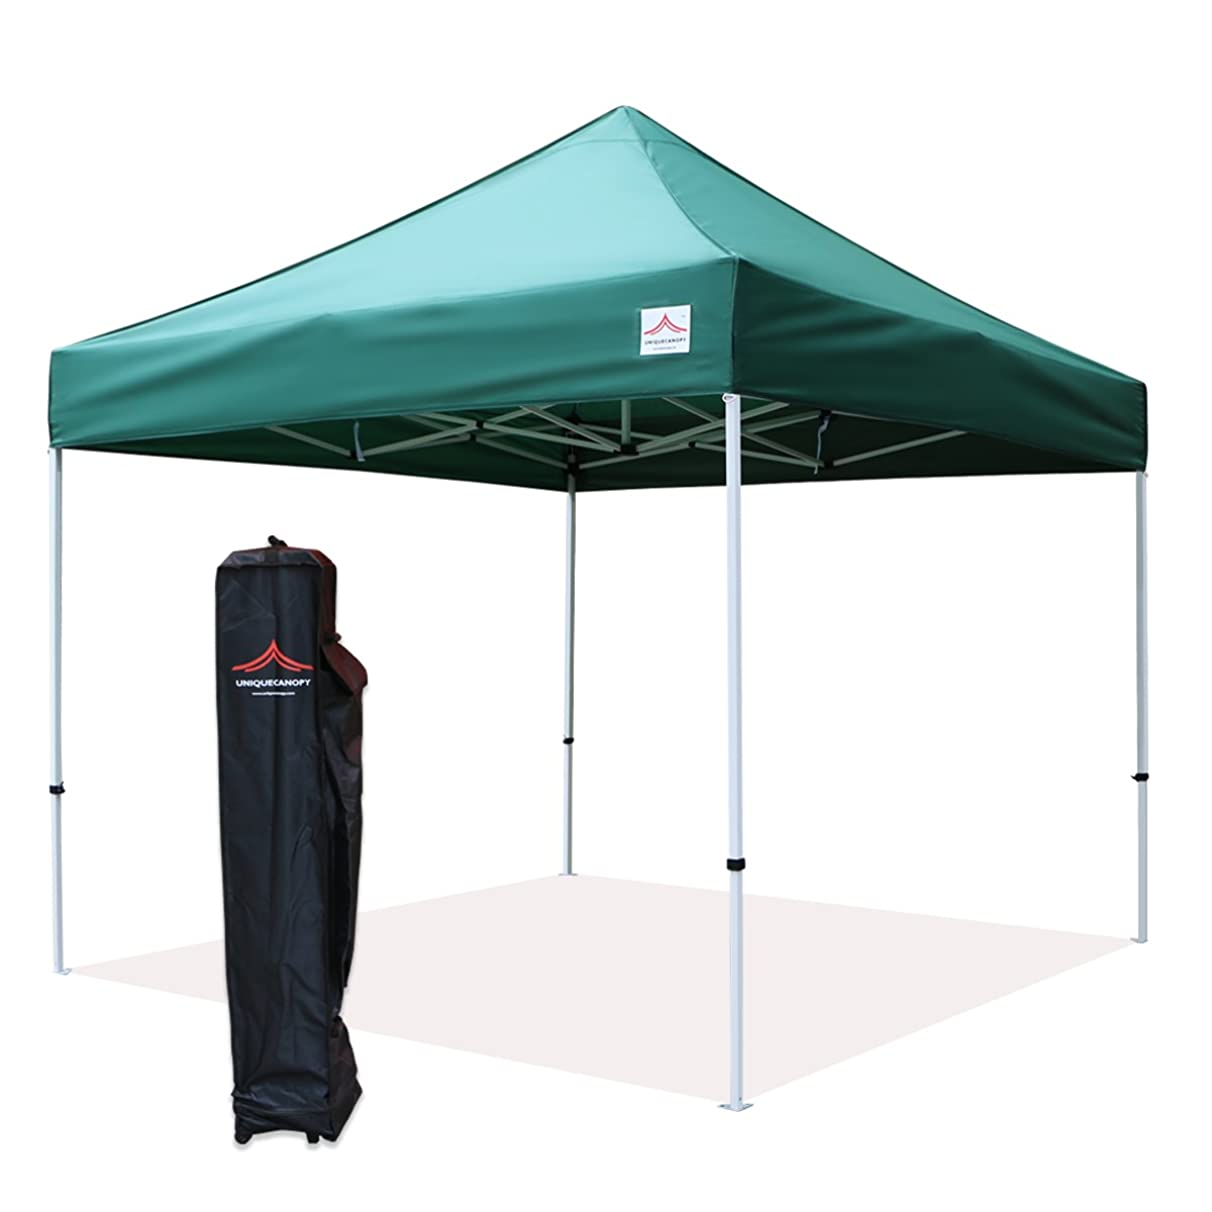 UNIQUECANOPY 10x10 Ez Pop up Canopy Tents for Parties Outdoor Portable Instant Folded Commercial Popup Shelter, with Wheeled Carrying Bag Dark Green